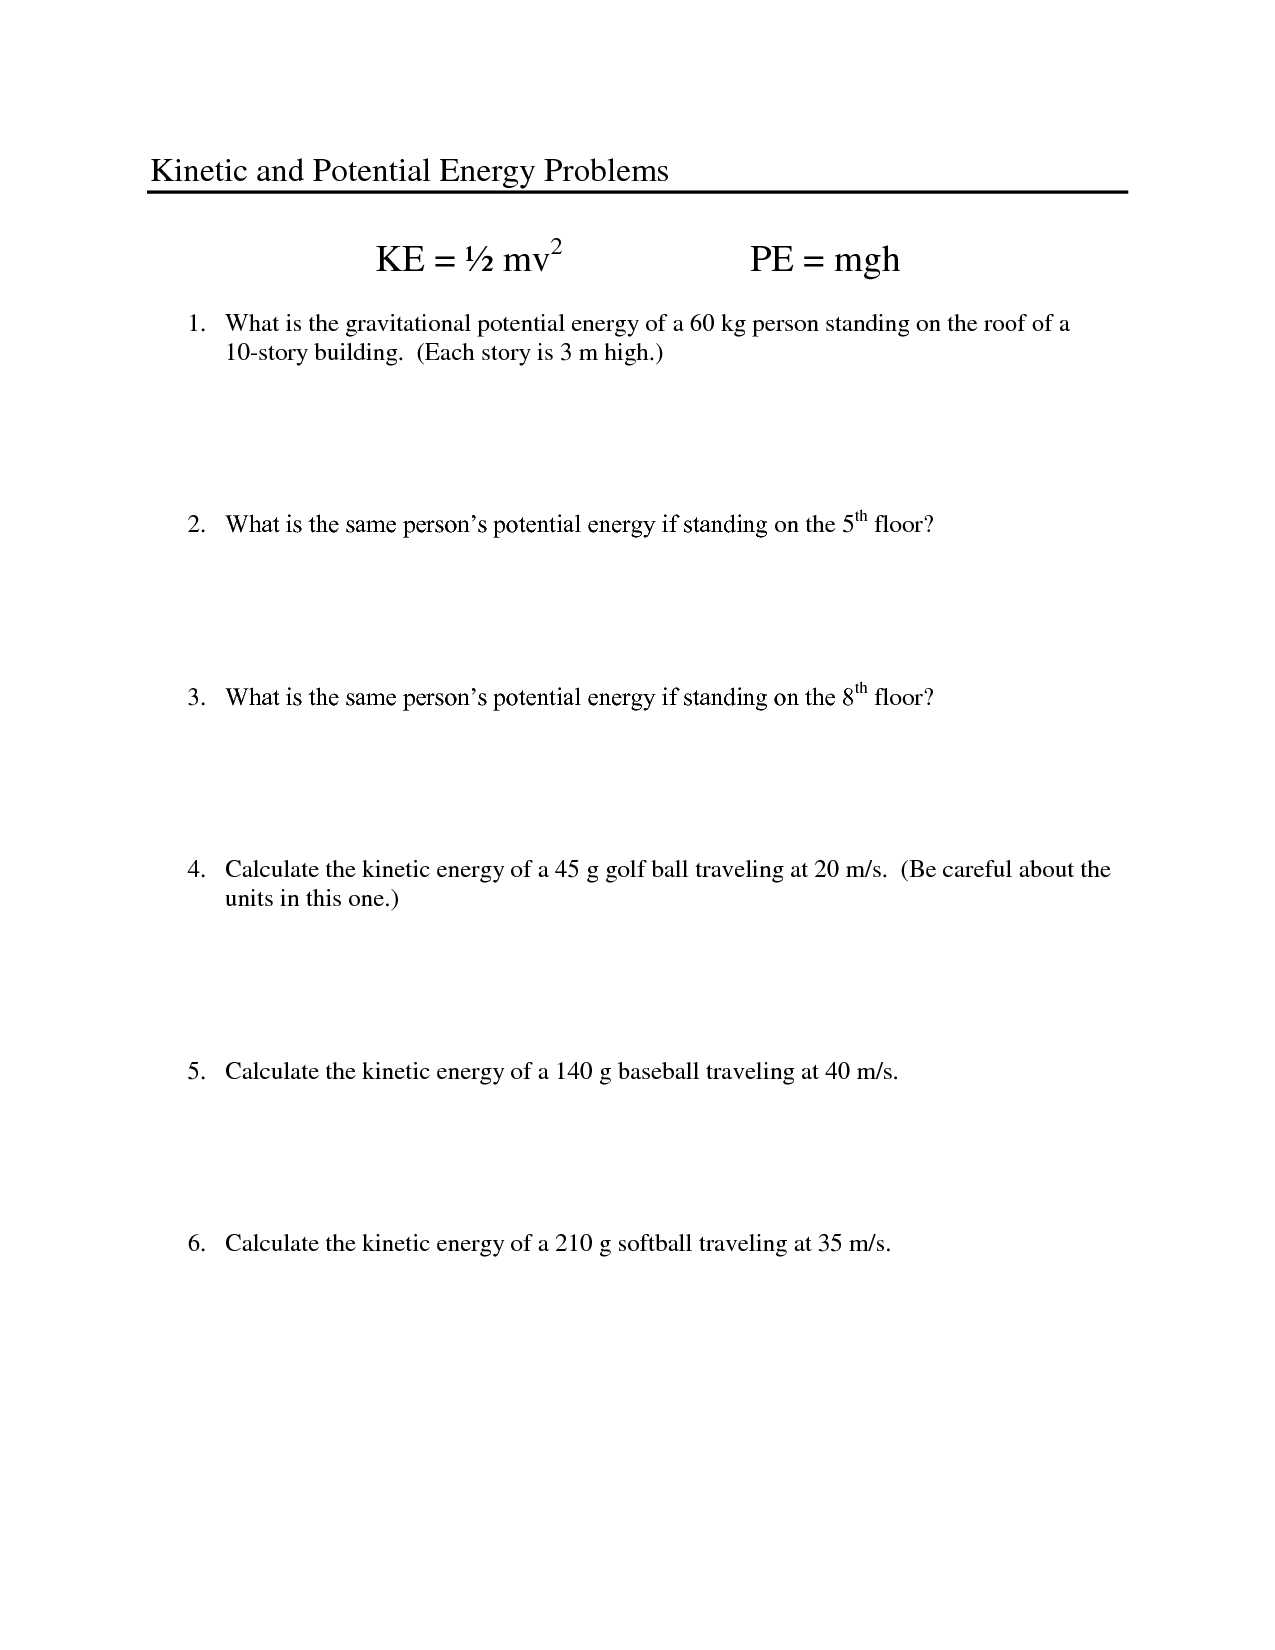 Potential Energy Problems Worksheet or Kinetic and Potential Energy Worksheet Worksheet for Kids